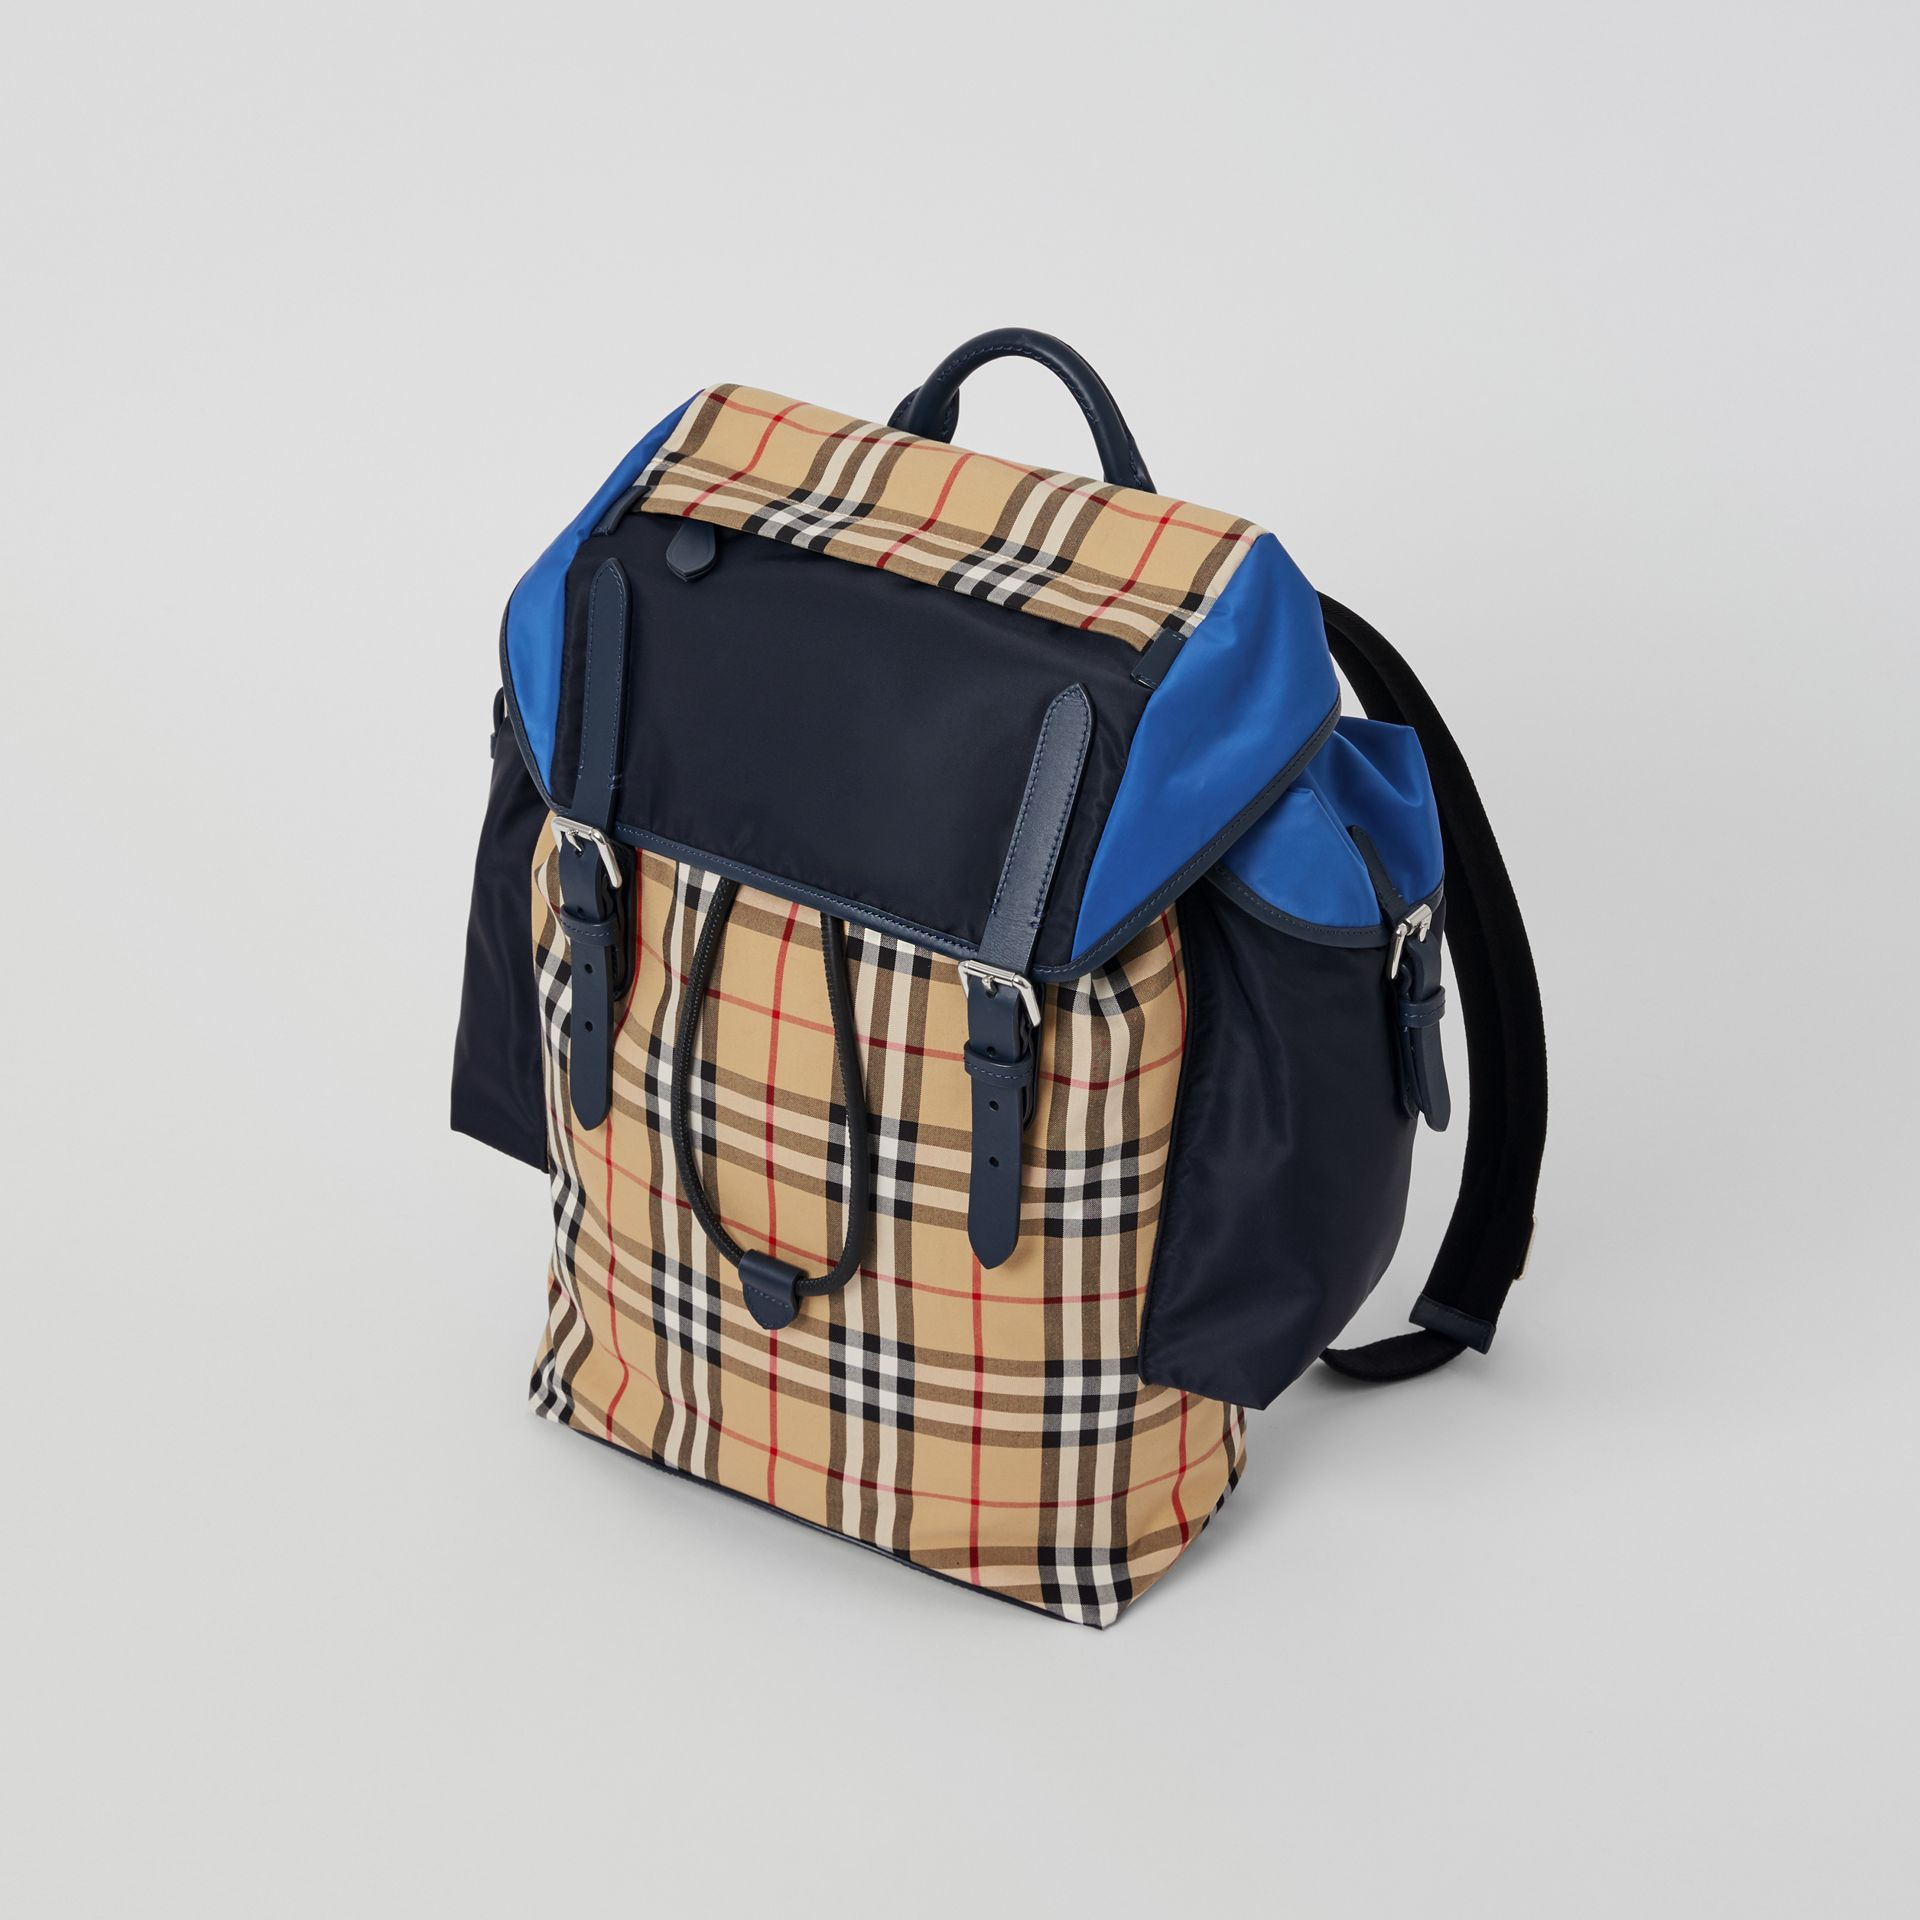 Lederrucksack im Vintage Check- und Colour-Blocking-Design (Marineblau) - Herren | Burberry - Galerie-Bild 4